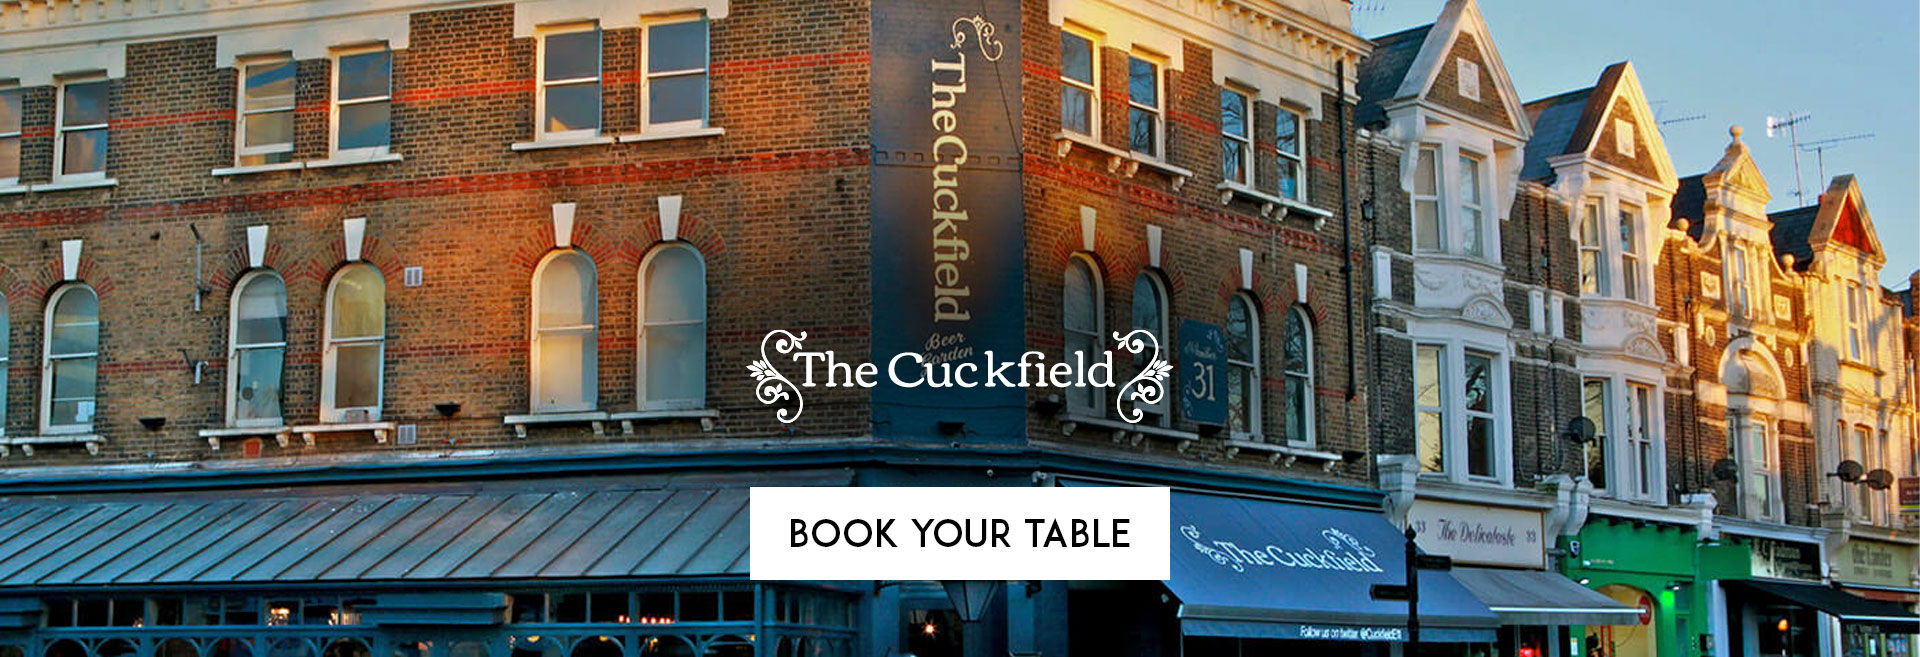 Book Your Table at The Cuckfield